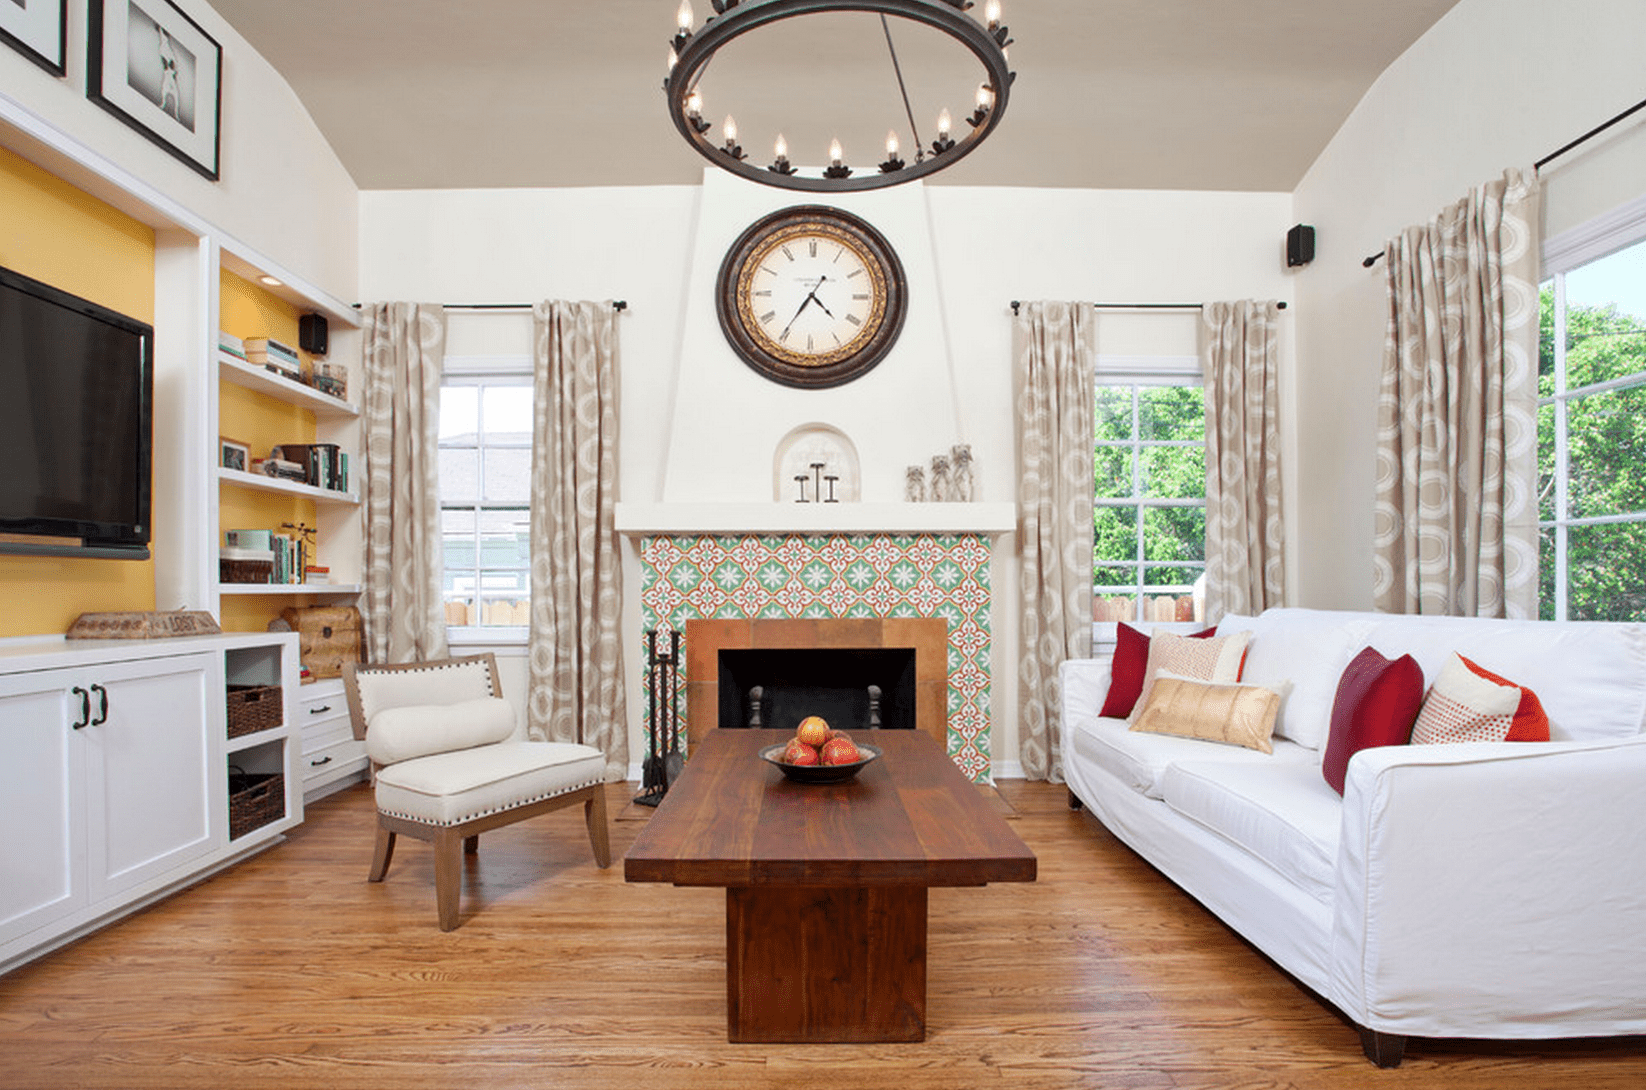 Living room with colorful and patterned fireplace surround